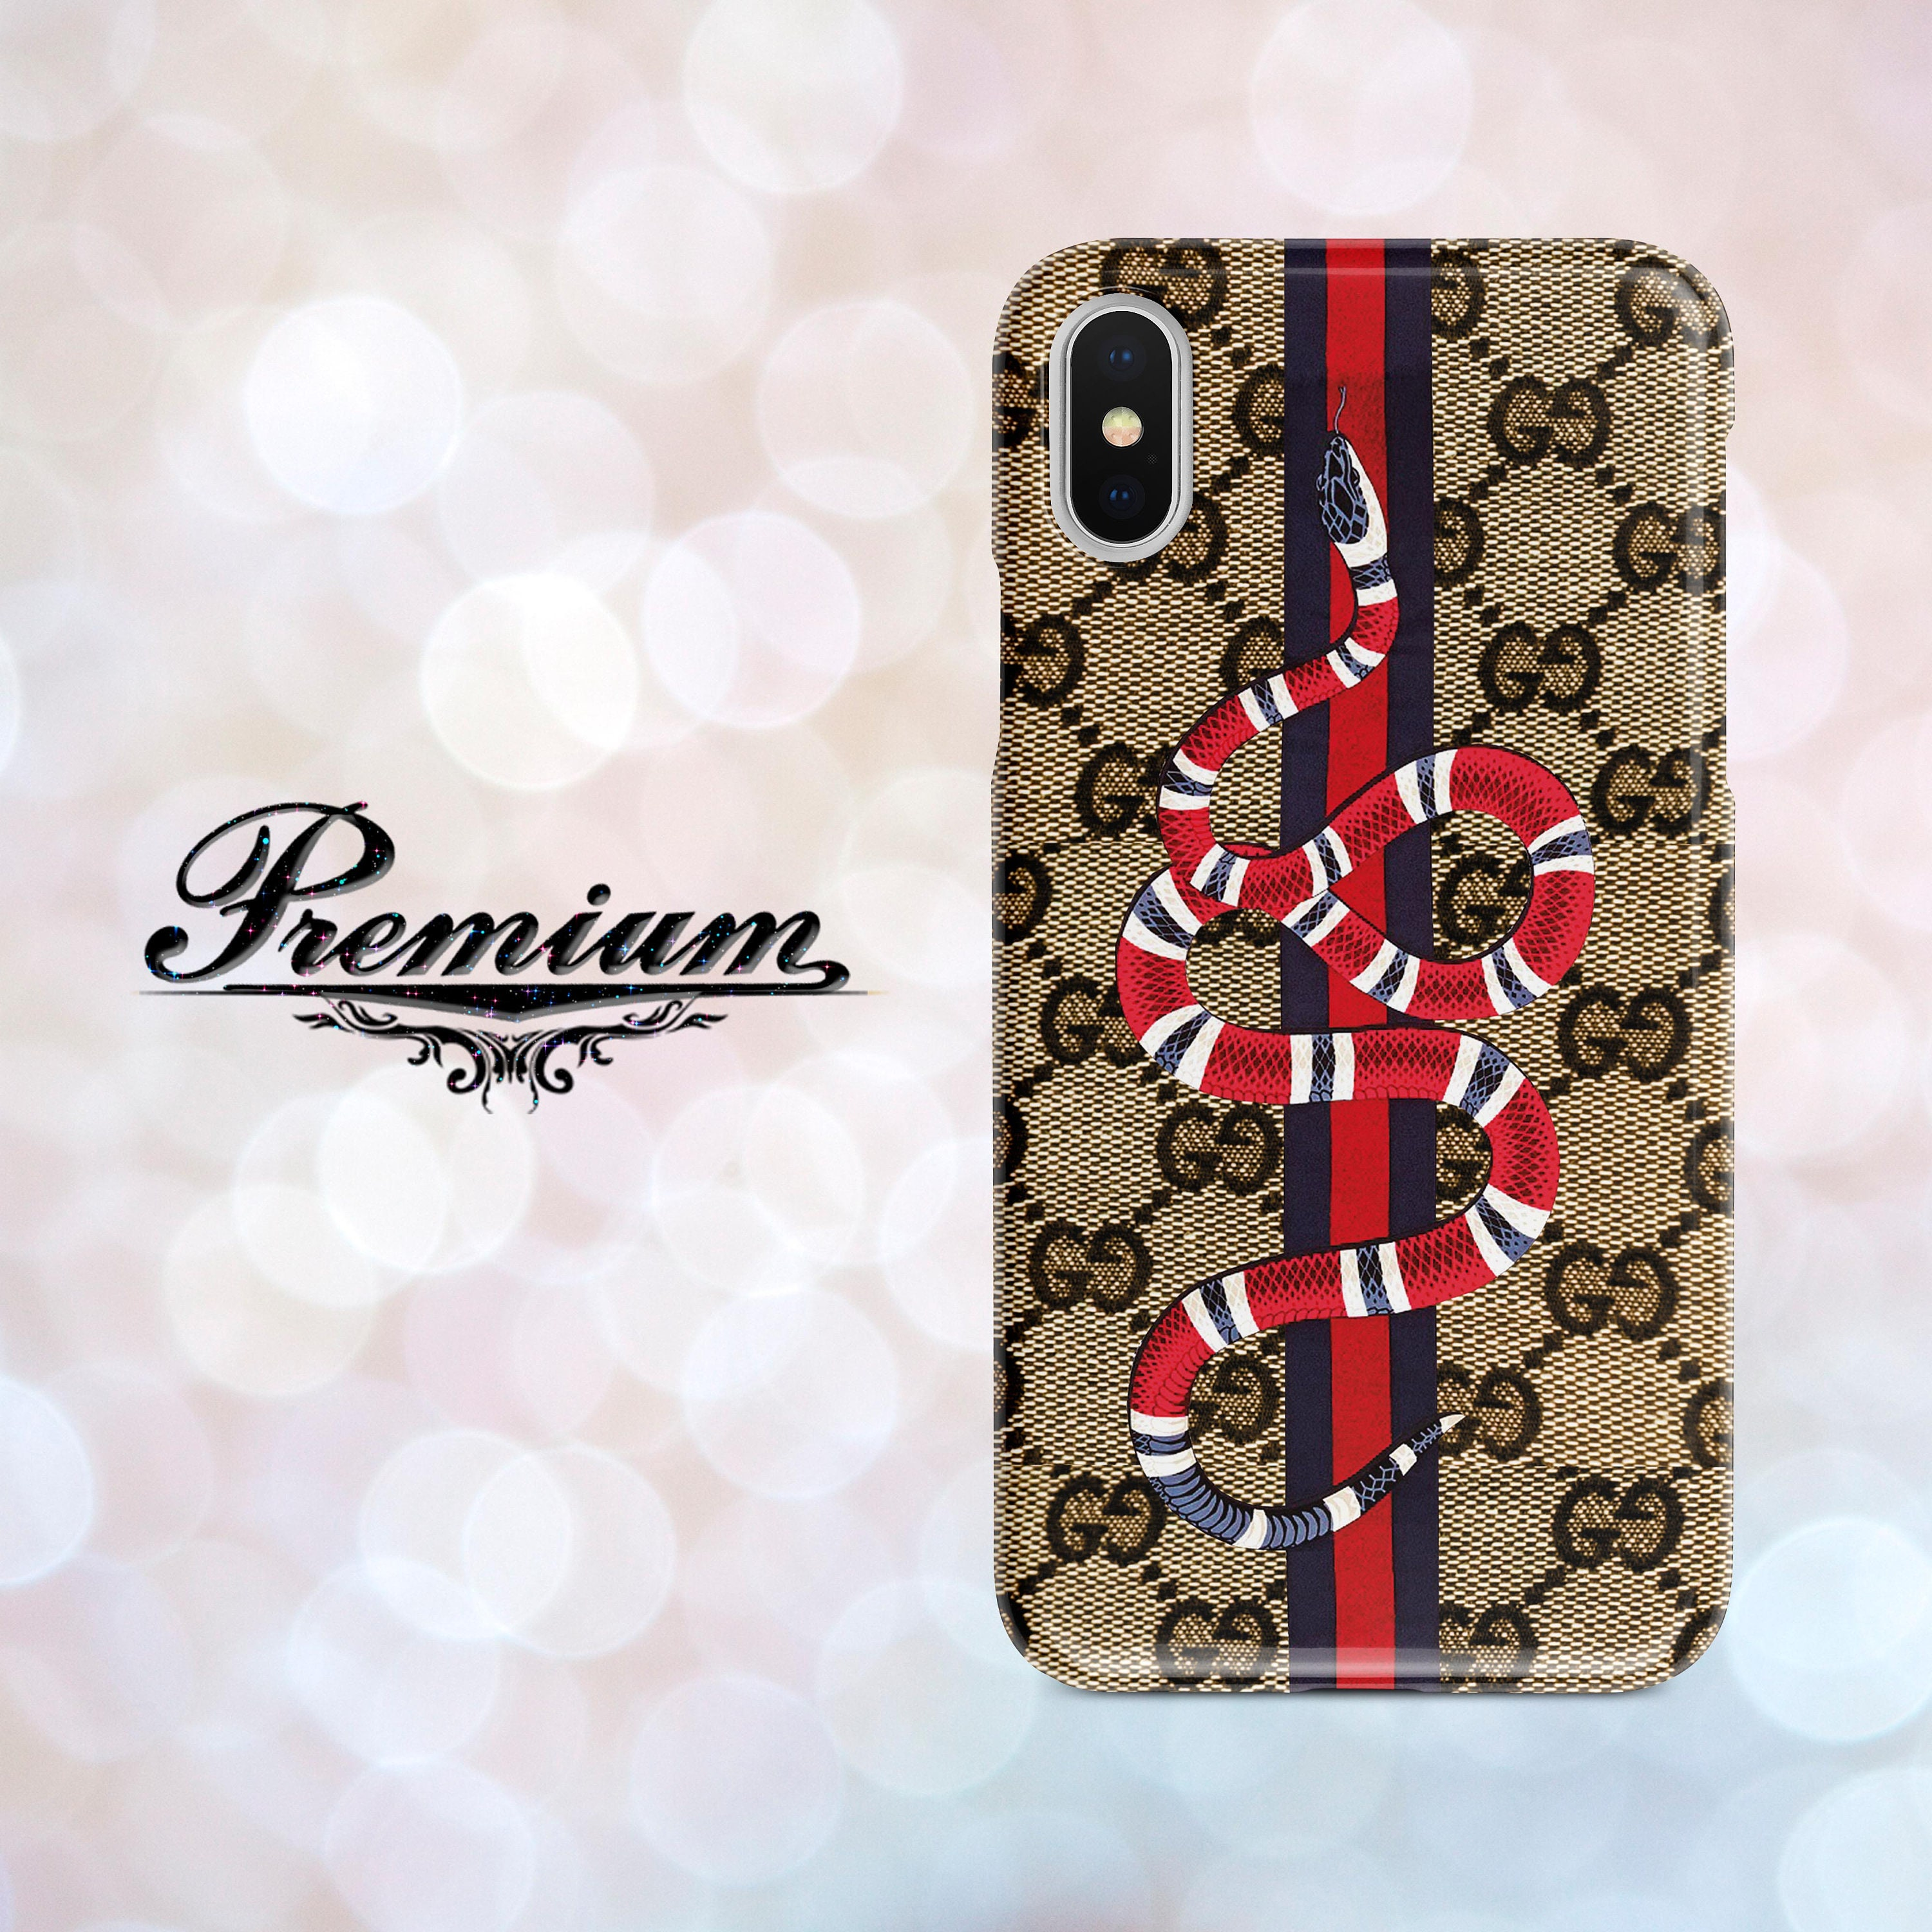 official photos 7ceb1 ab93e Inspired Gucci Phone Case Gucci Snake iPhone SE Case Gucci iPhone 7 Plus  Case iPhone Gucci case Red Snake iPhone 6 Plus Gucci Case for Phone